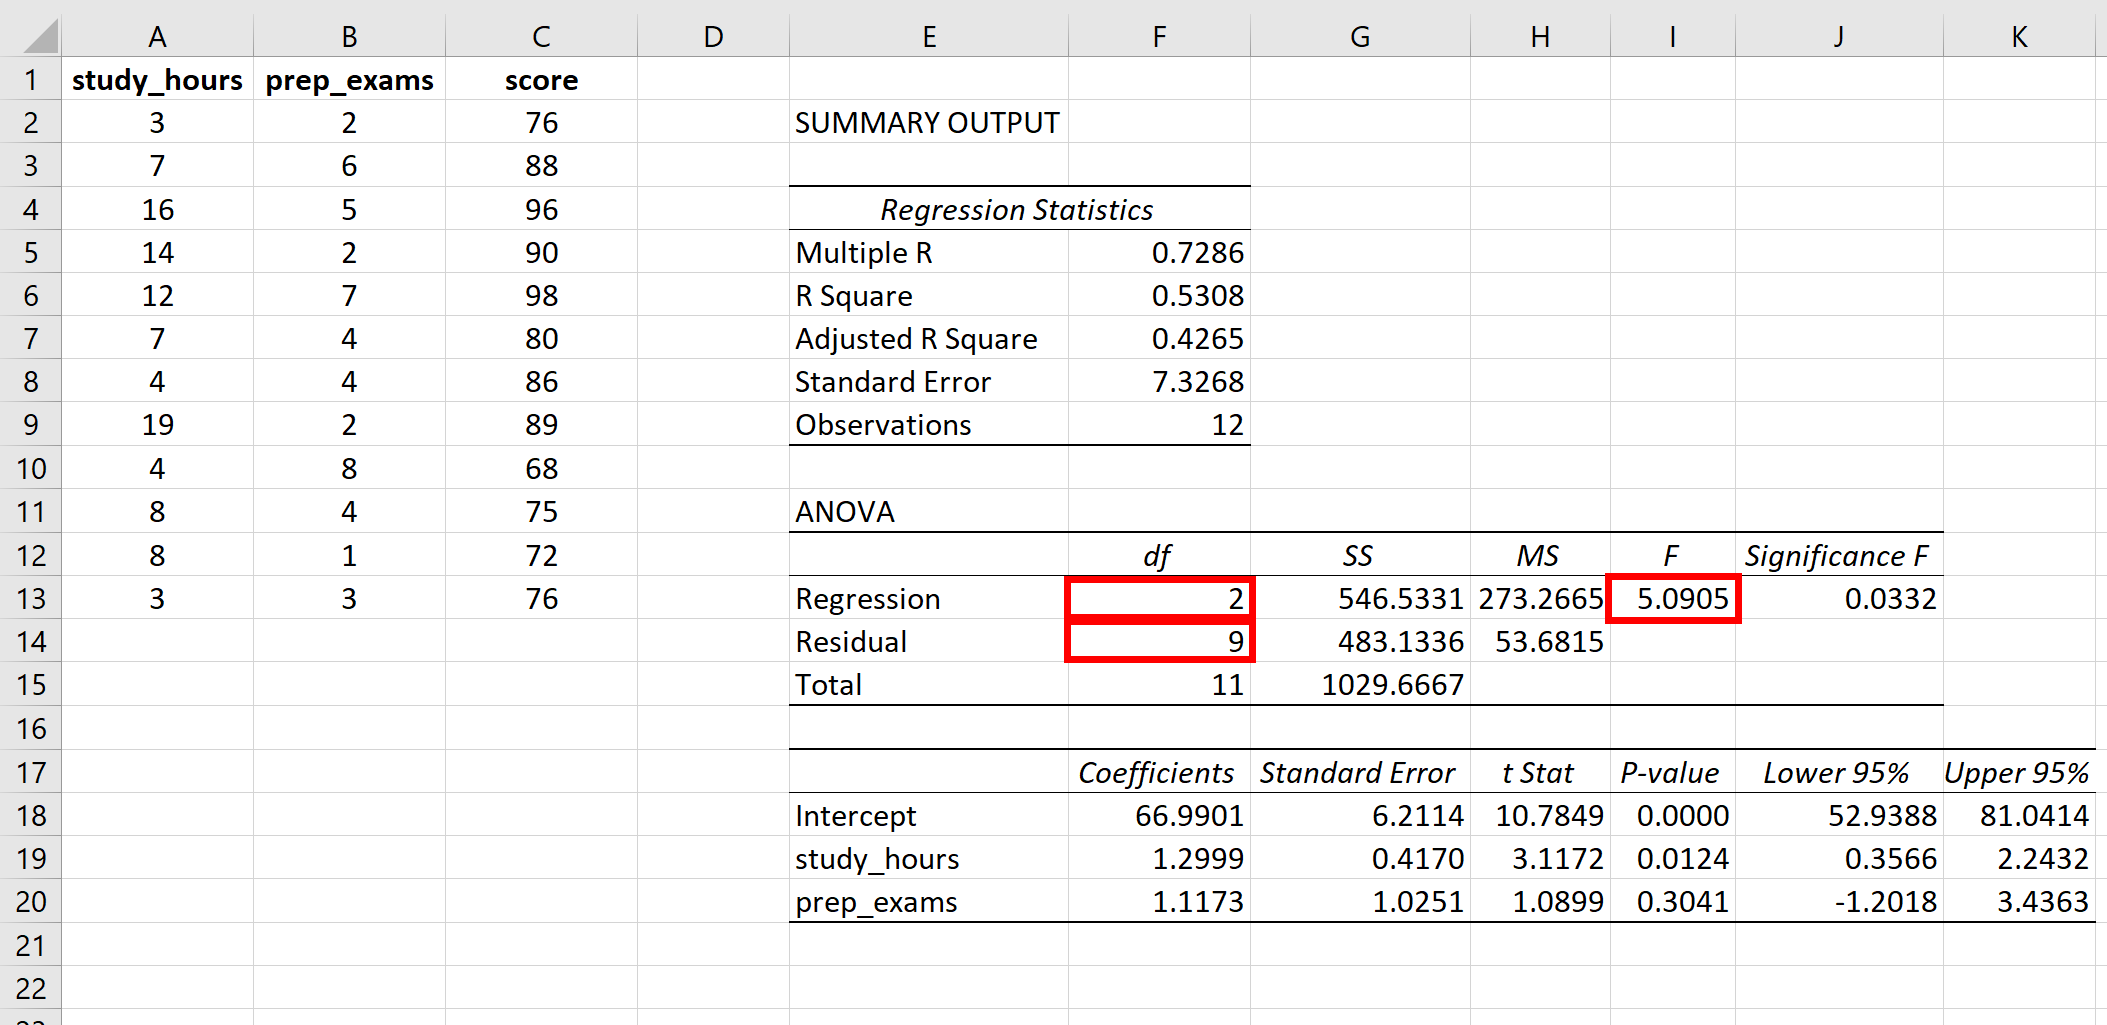 F statistic for overall regression in Excel